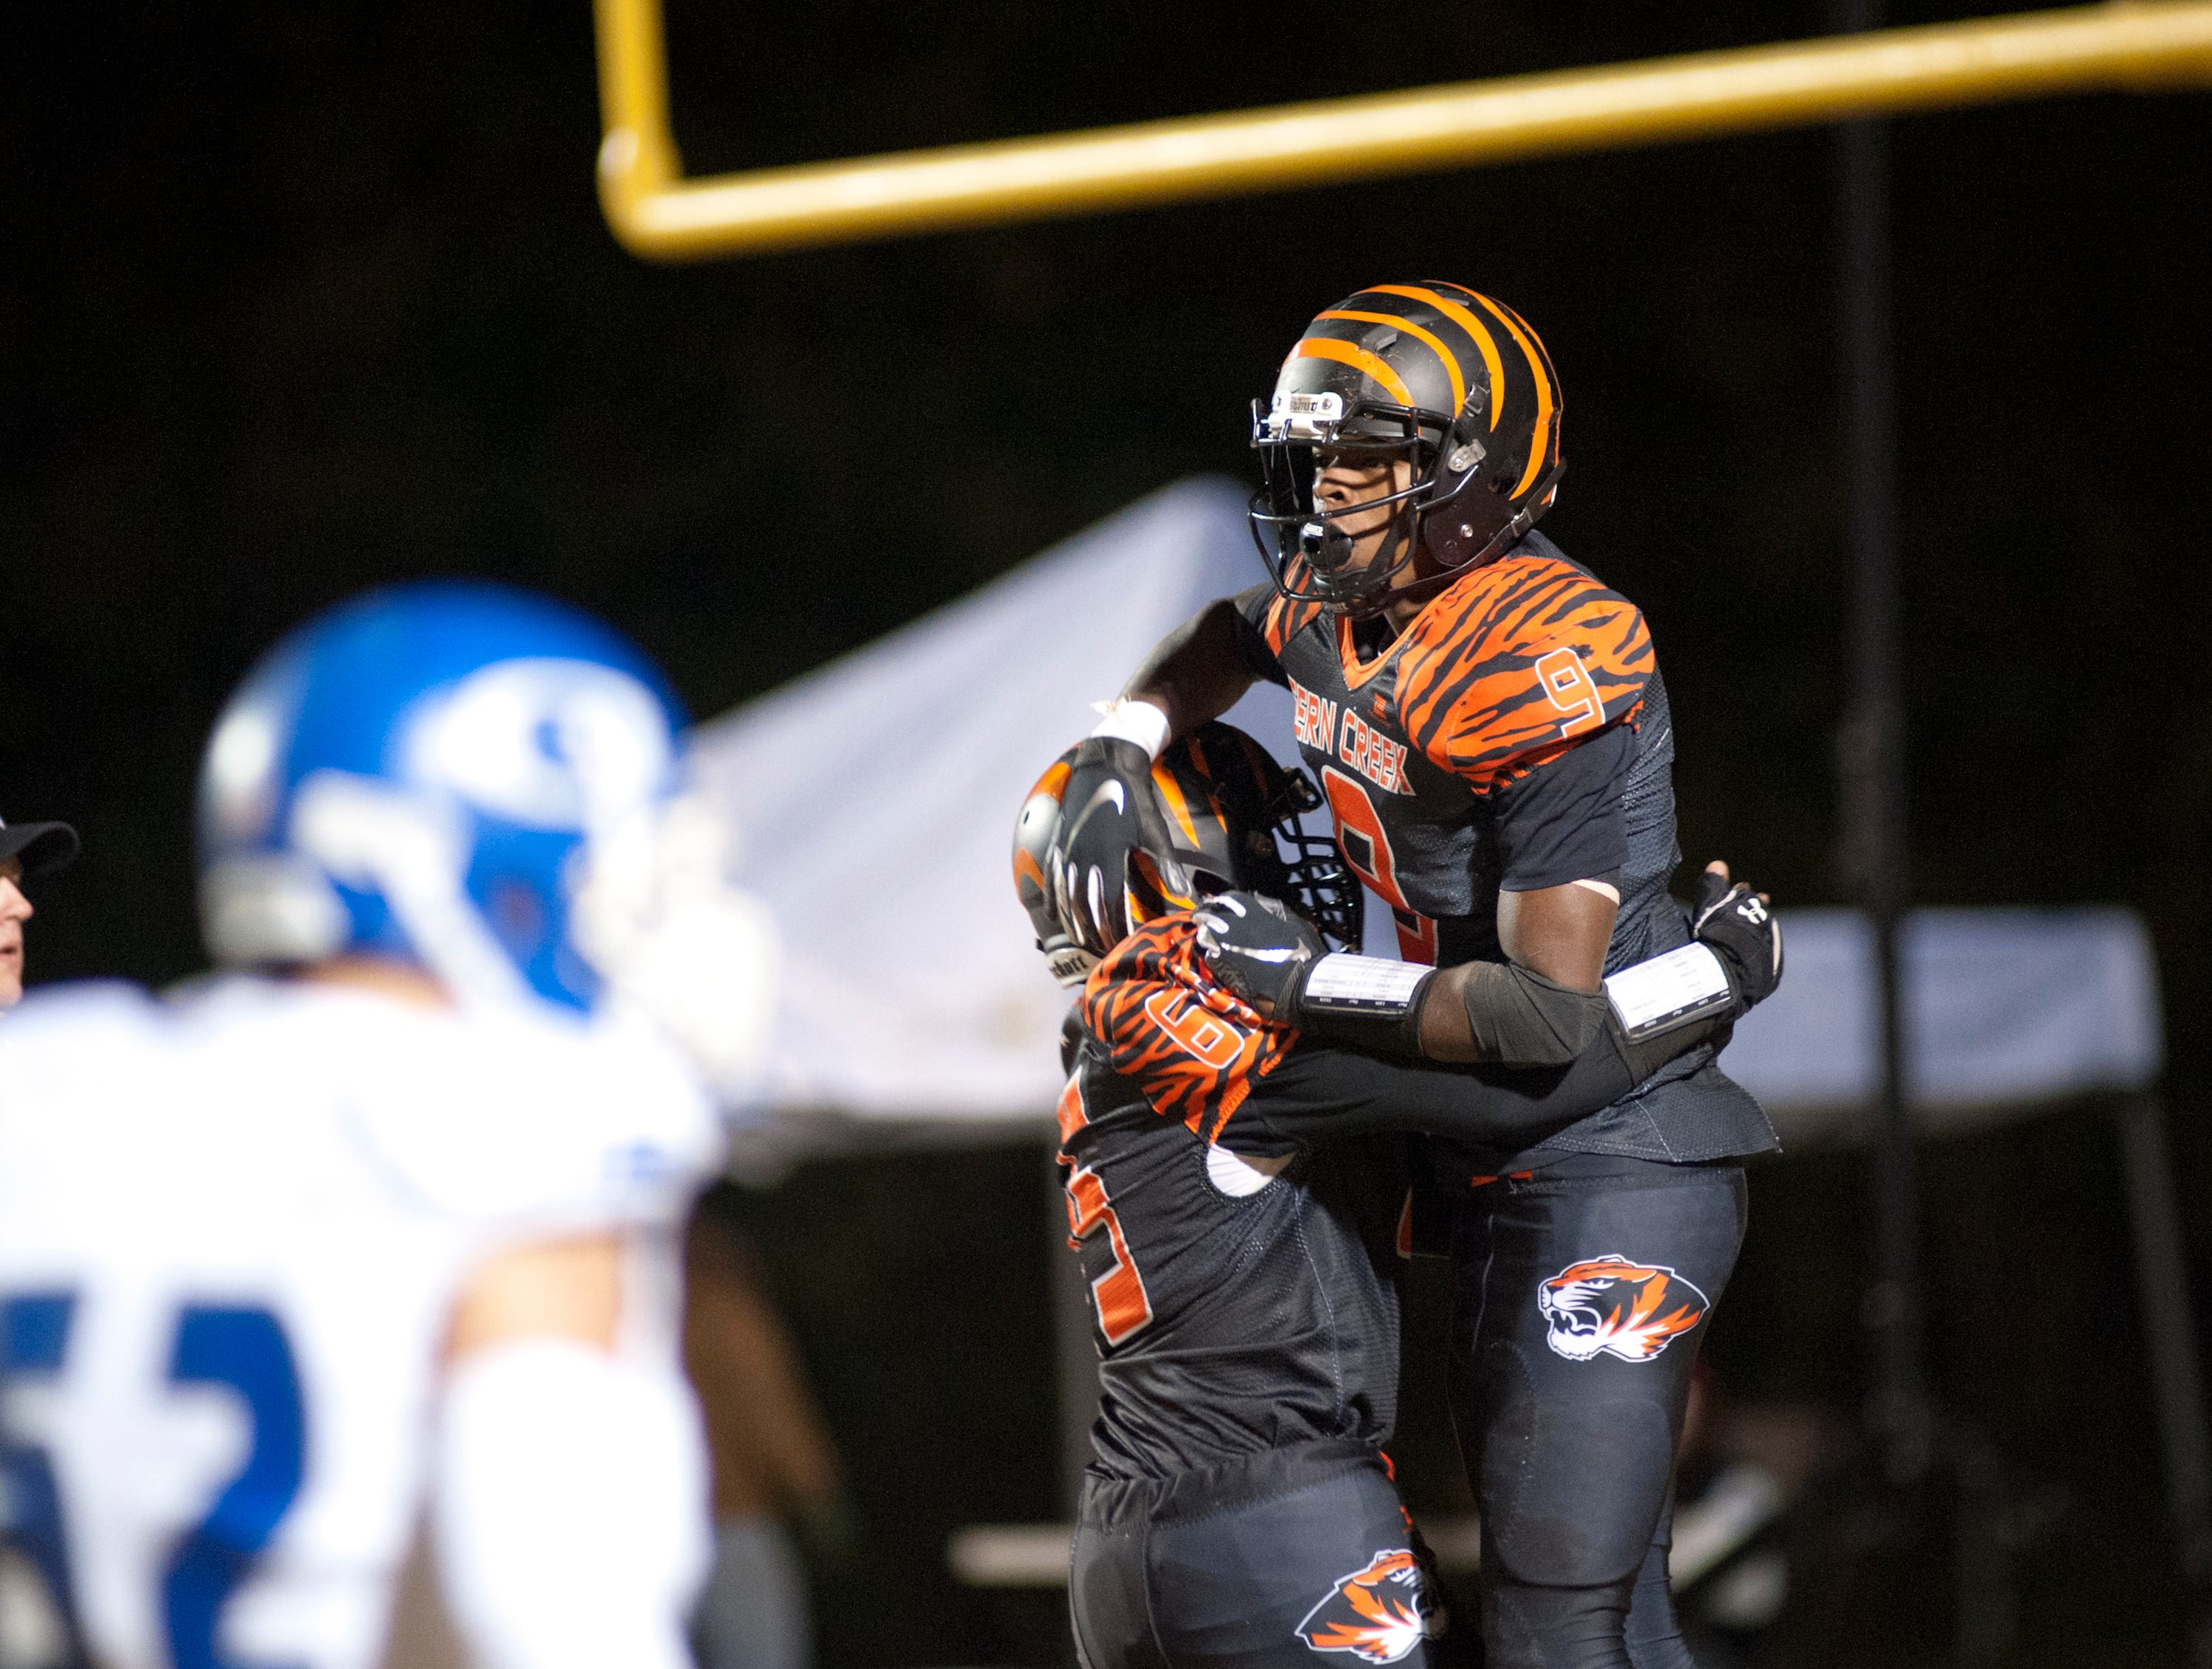 Fern Creek wide receiver William Neal, right, is hoisted up by teammate wide receiver Trayvon Holloway after Neal scores. Nov. 9, 2018